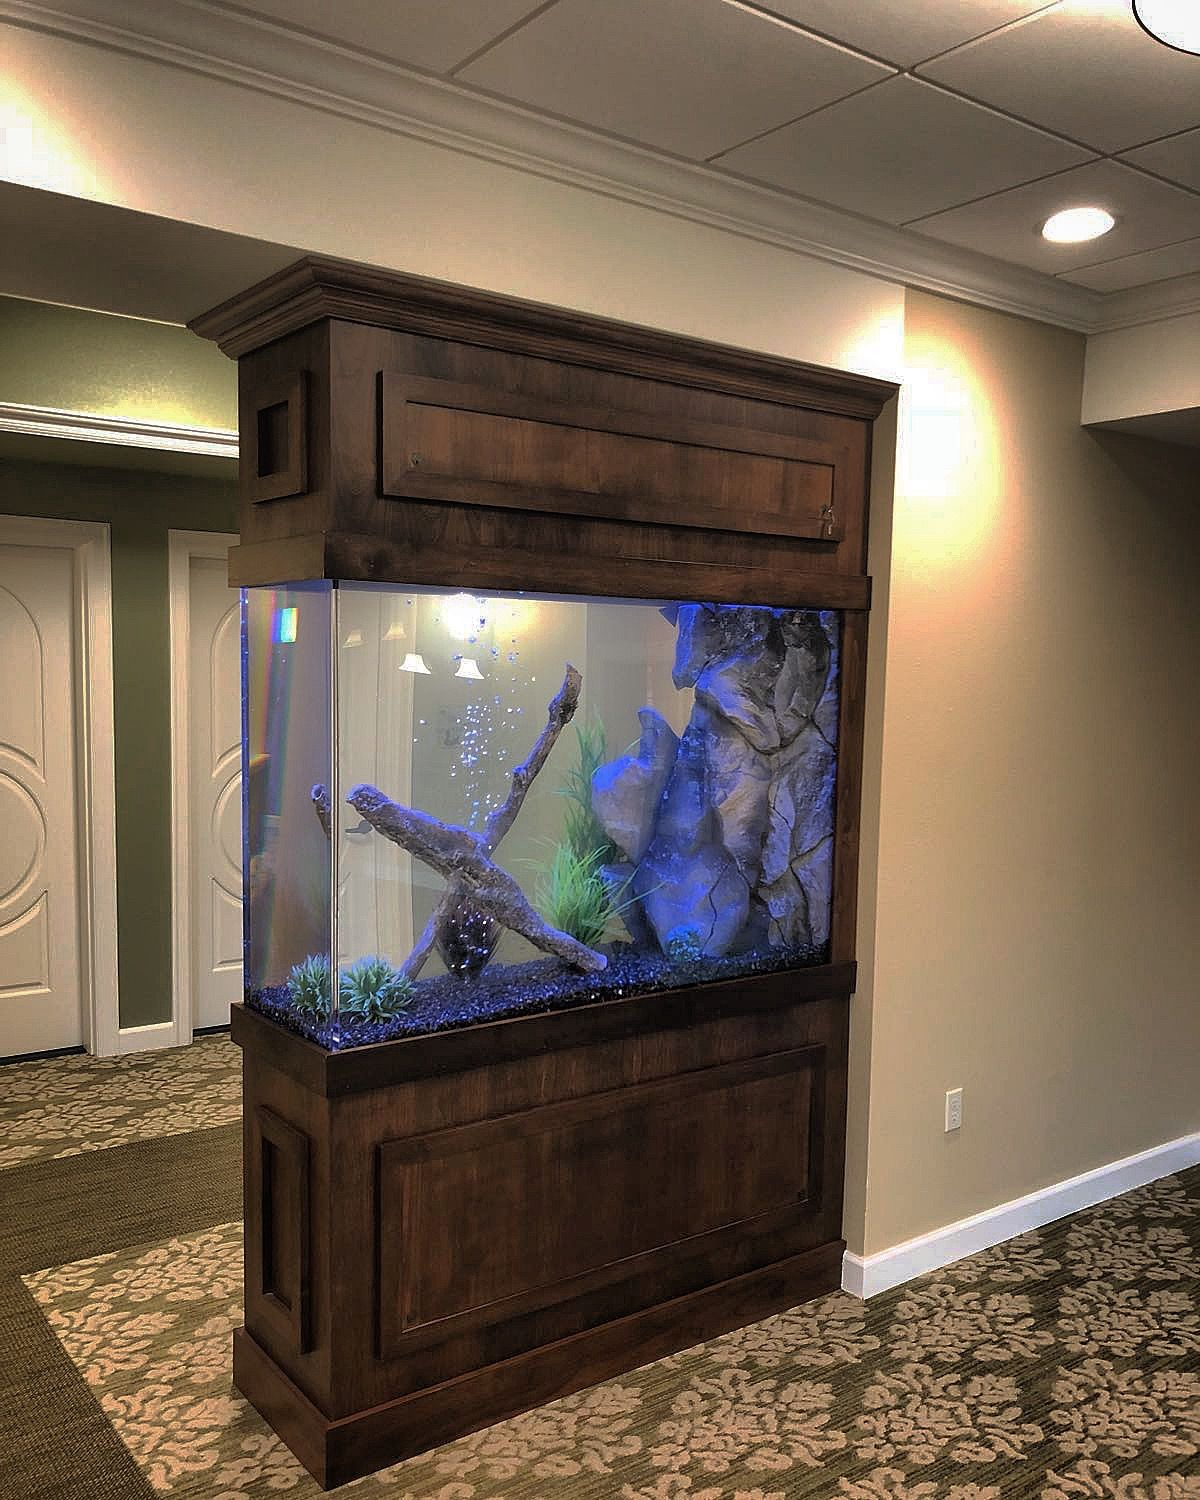 Home Aquarium Design Ideas: Idea By Aquadecor On Aquadecor Aquariums